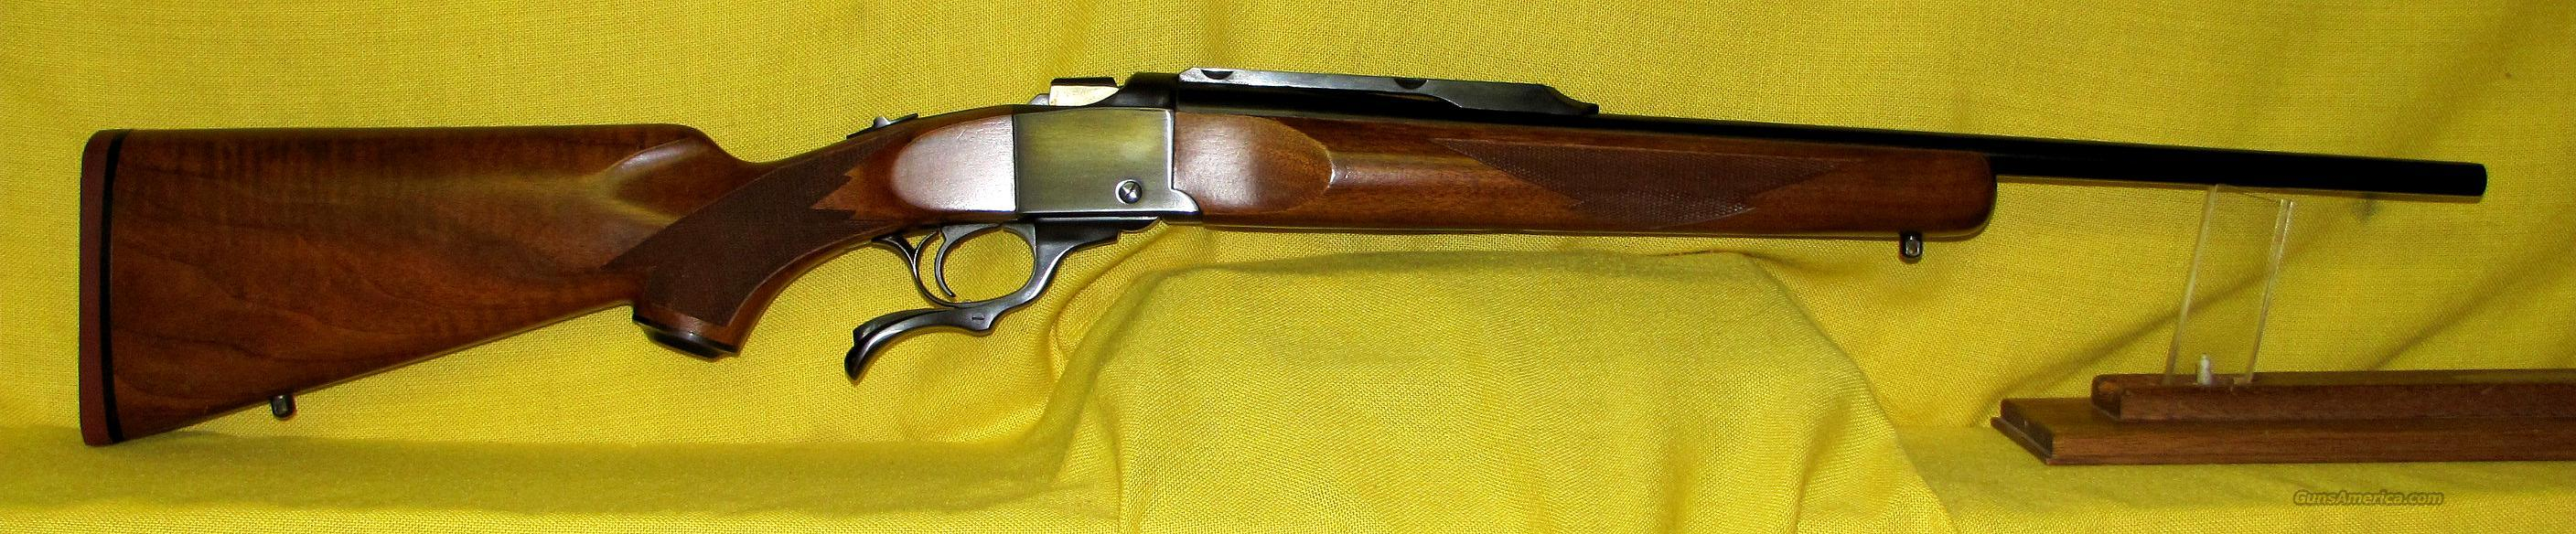 "RUGER NO. 1-B .223 20"" BARREL  Guns > Rifles > Ruger Rifles > #1 Type"